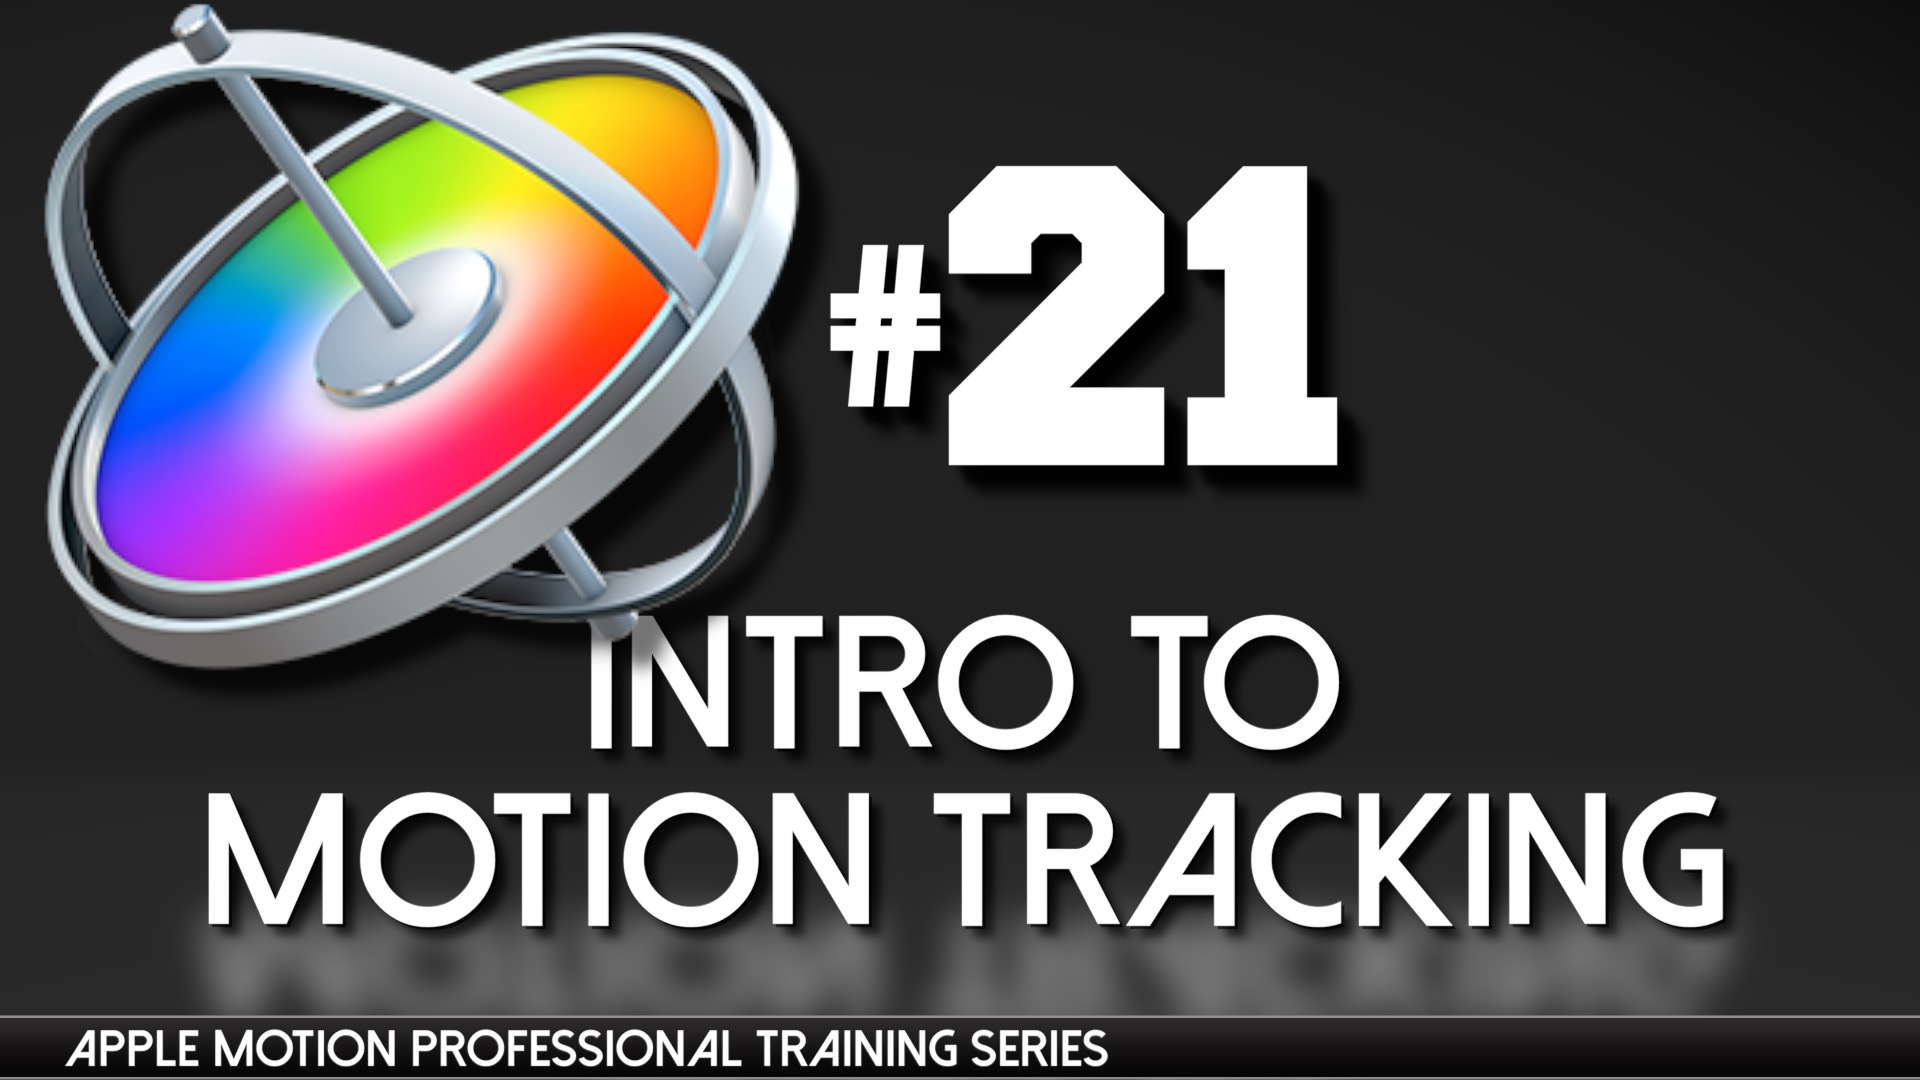 Matchmove Artist Resume Apple Motion Professional Training 21 Intro To Motion Tracking